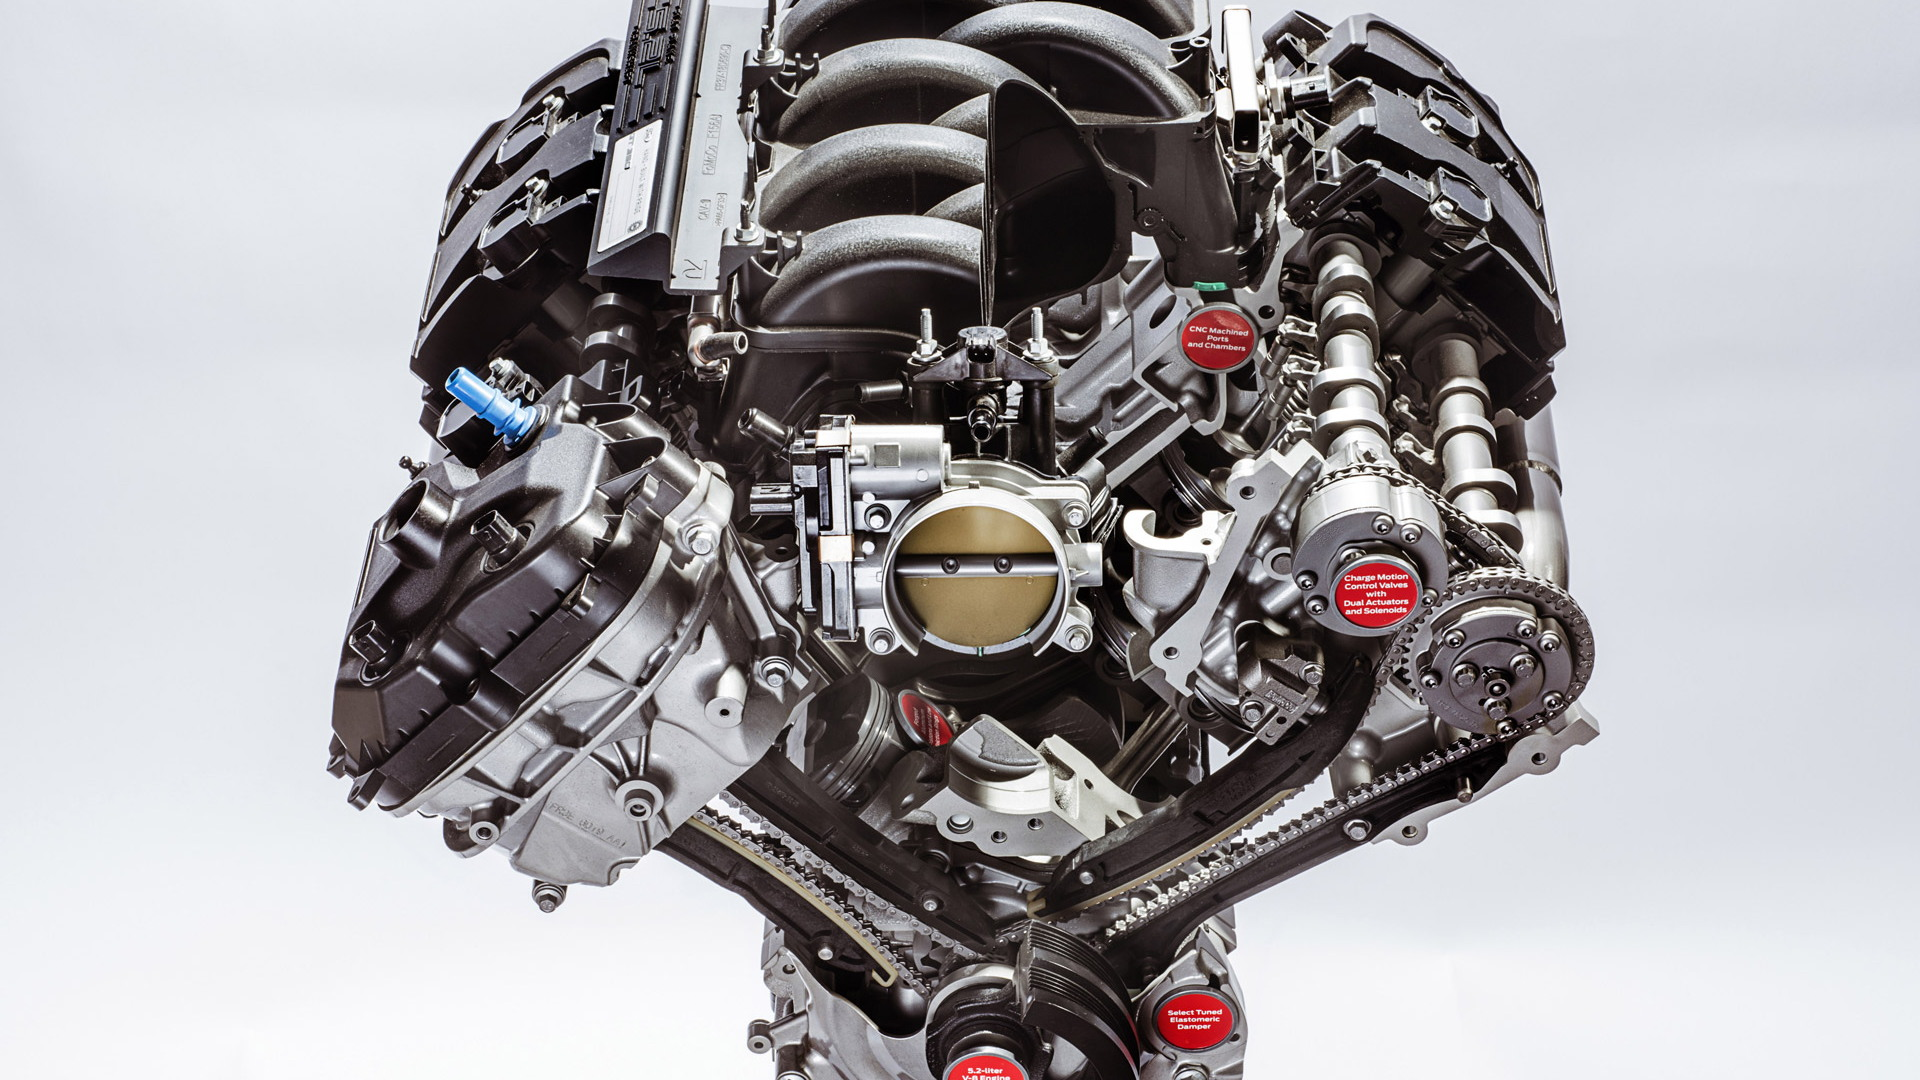 5.2-liter V-8 from the Ford Mustang Shelby GT350